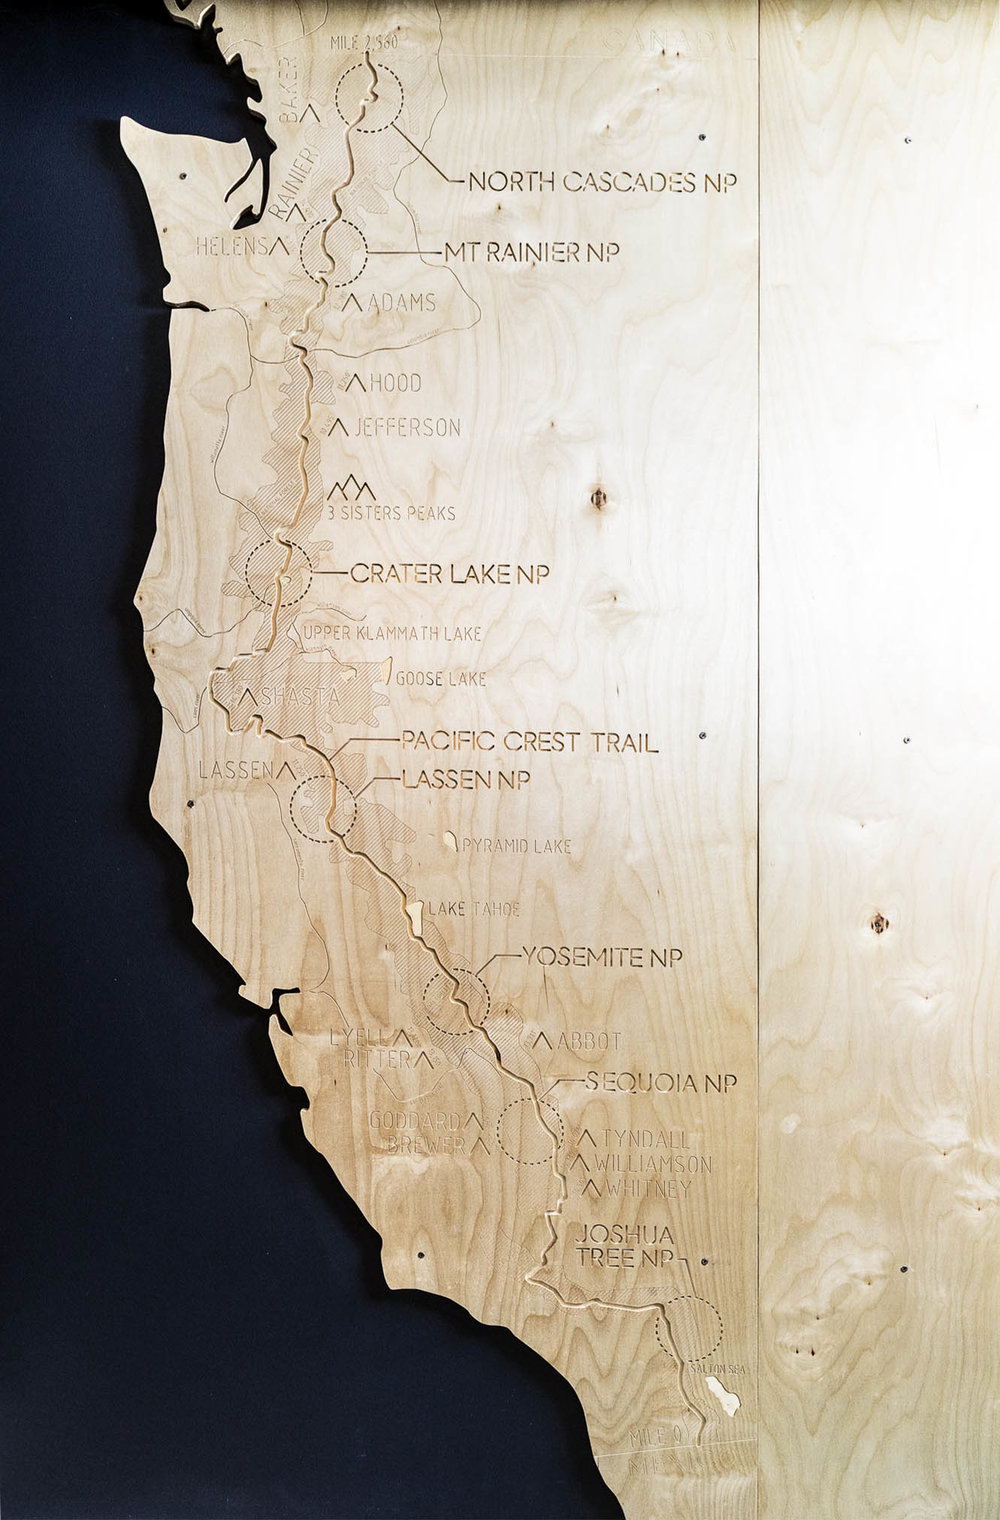 Computer-numeric-controlled (CNC) milling technology was used to produce a custom-designed plywood map of the Pacific Crest Trail for a waiting room wall.